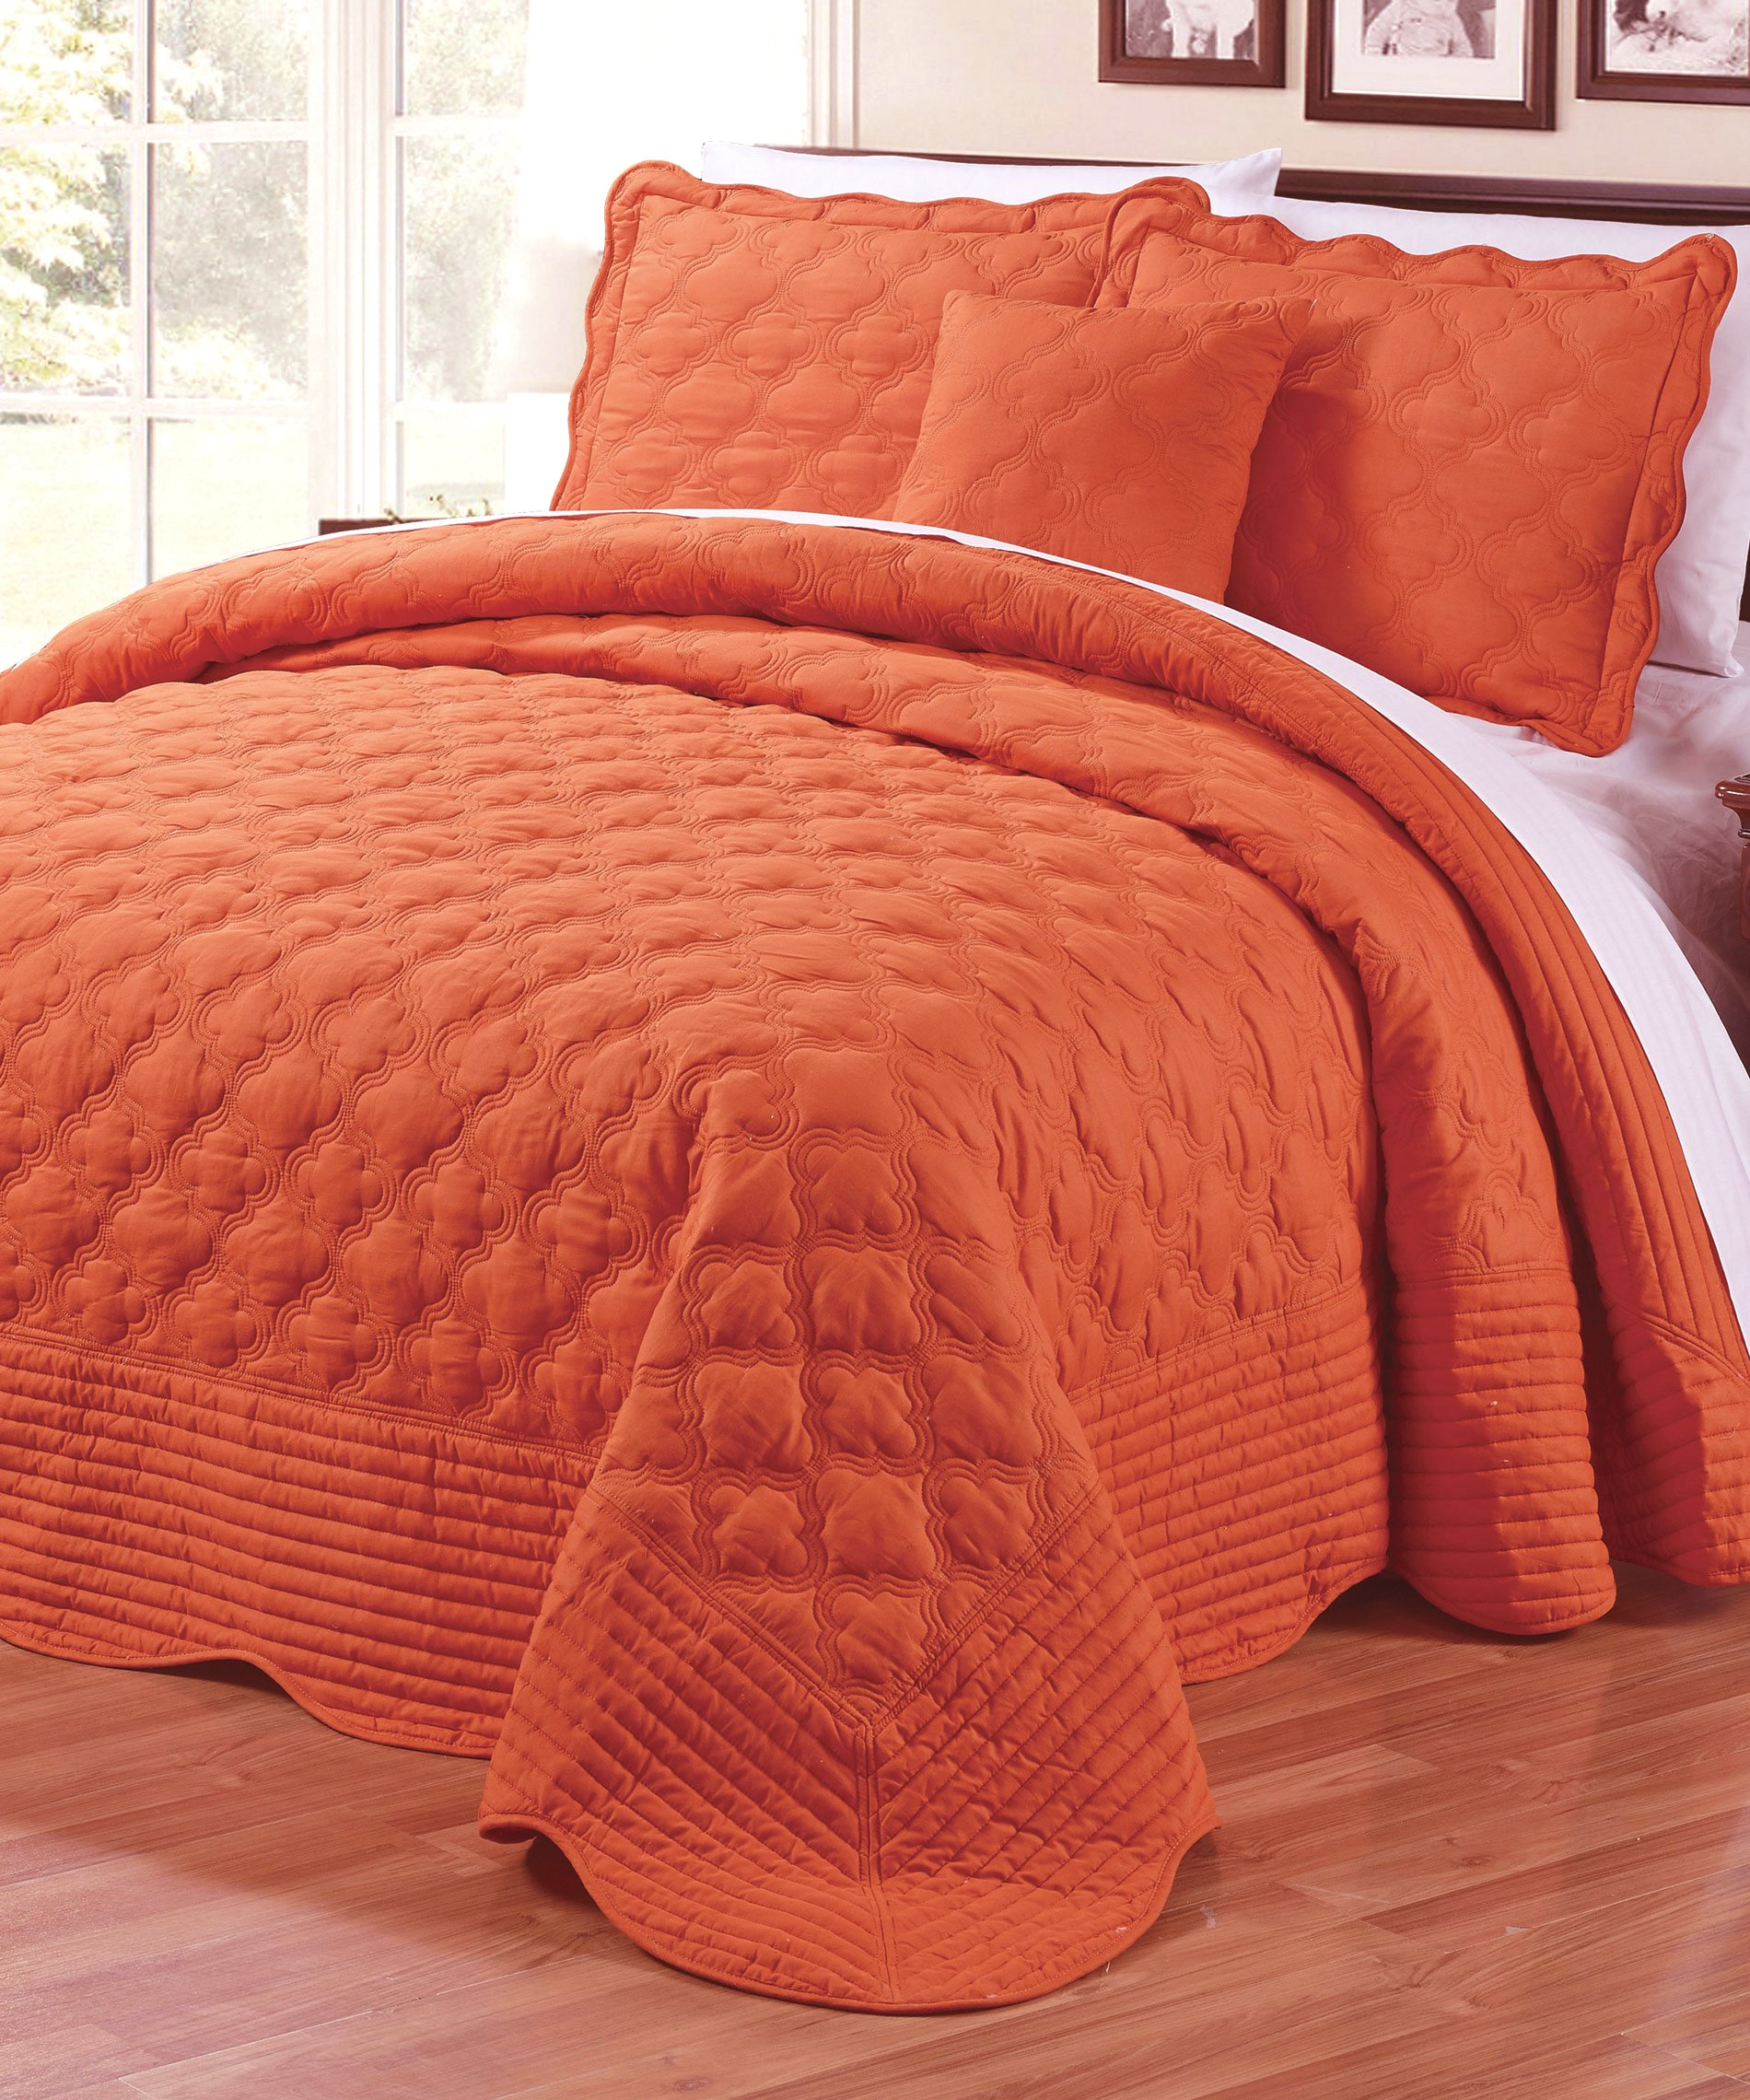 Serenta Quilted Cotton Bedspread 4 PCs Bedspread Set, King, Orange by Home Soft Things